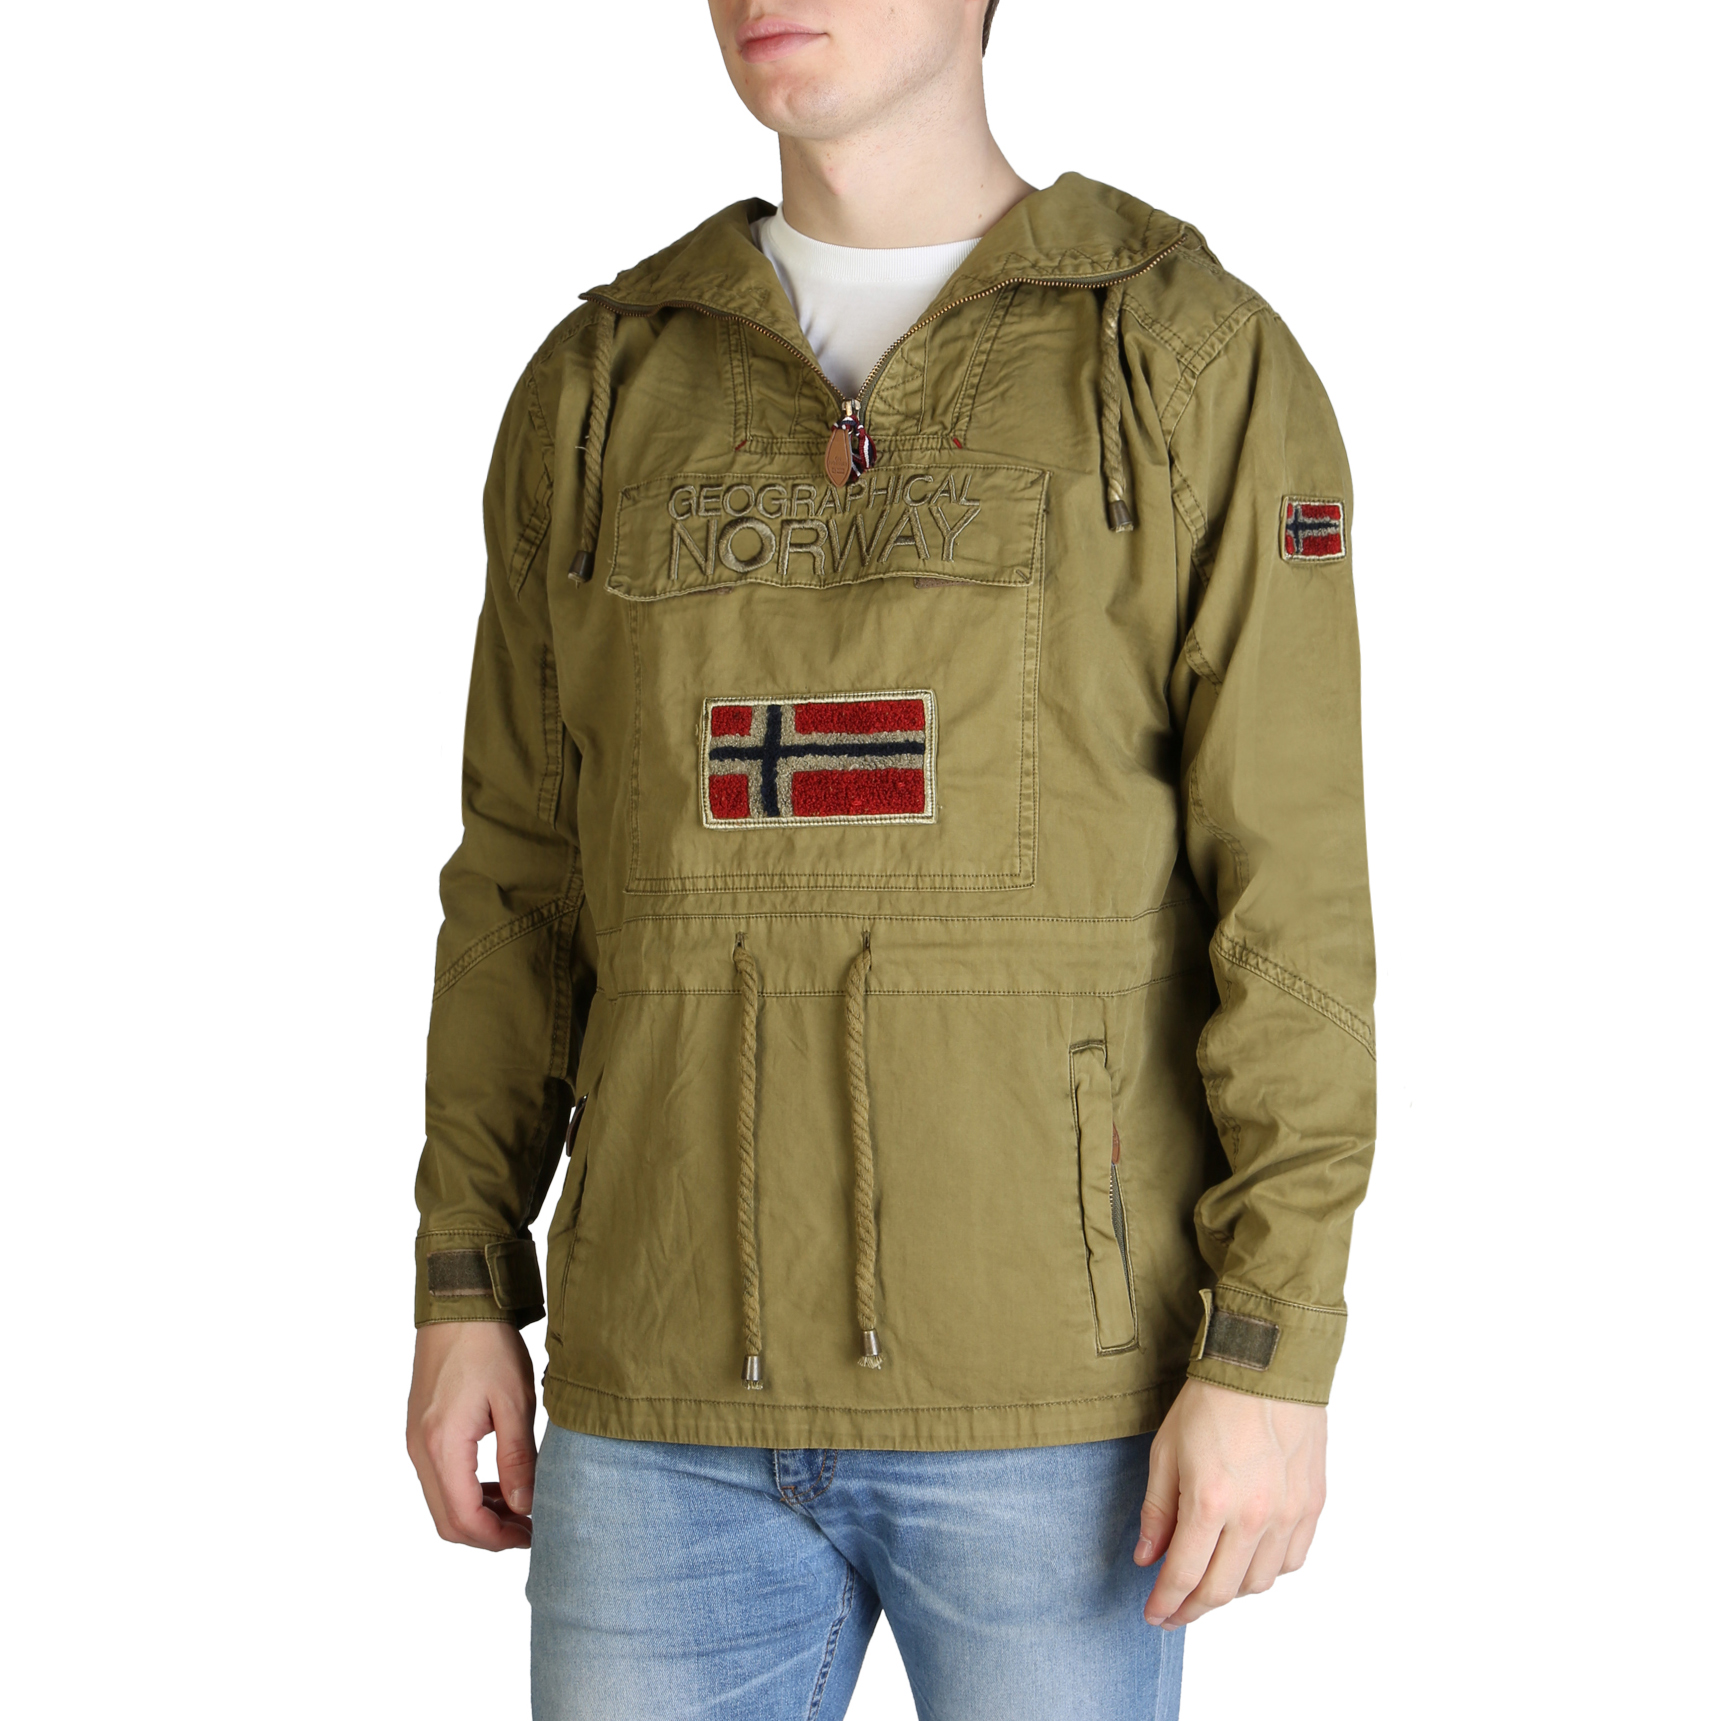 Geographical Norway Chomer man